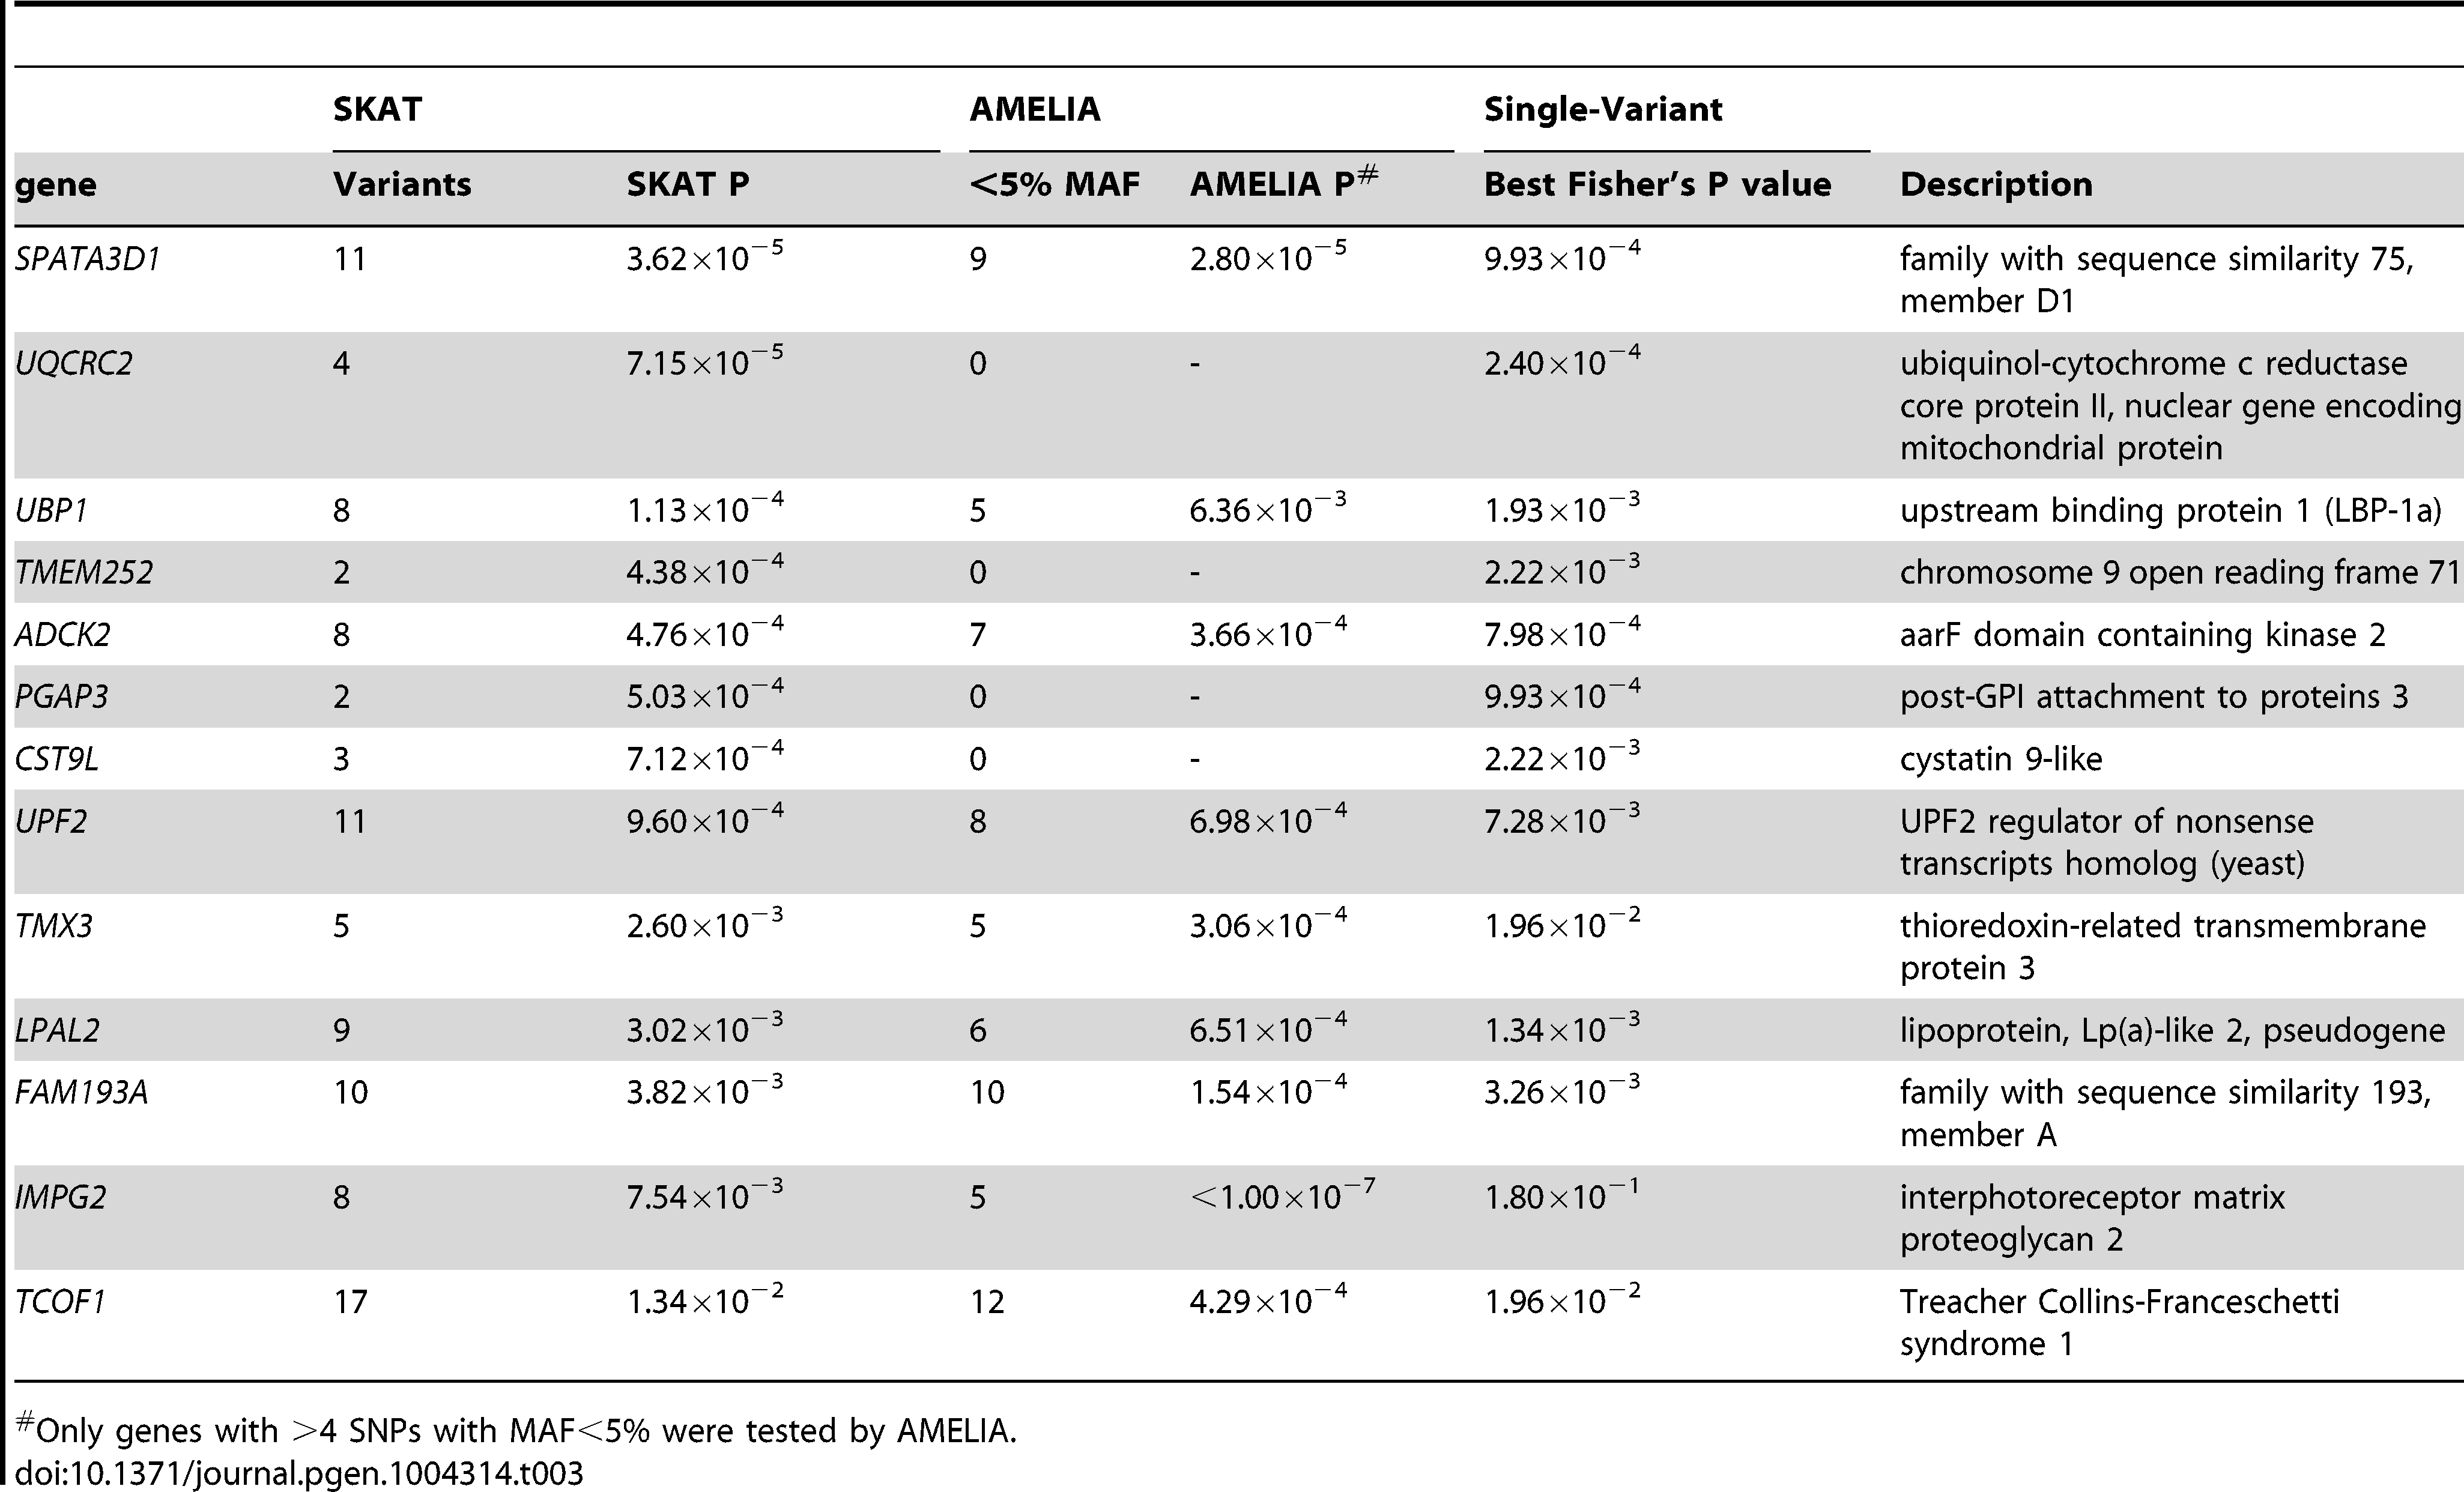 SKAT and AMELIA analysis results using primary controls, ranked by SKAT P value.